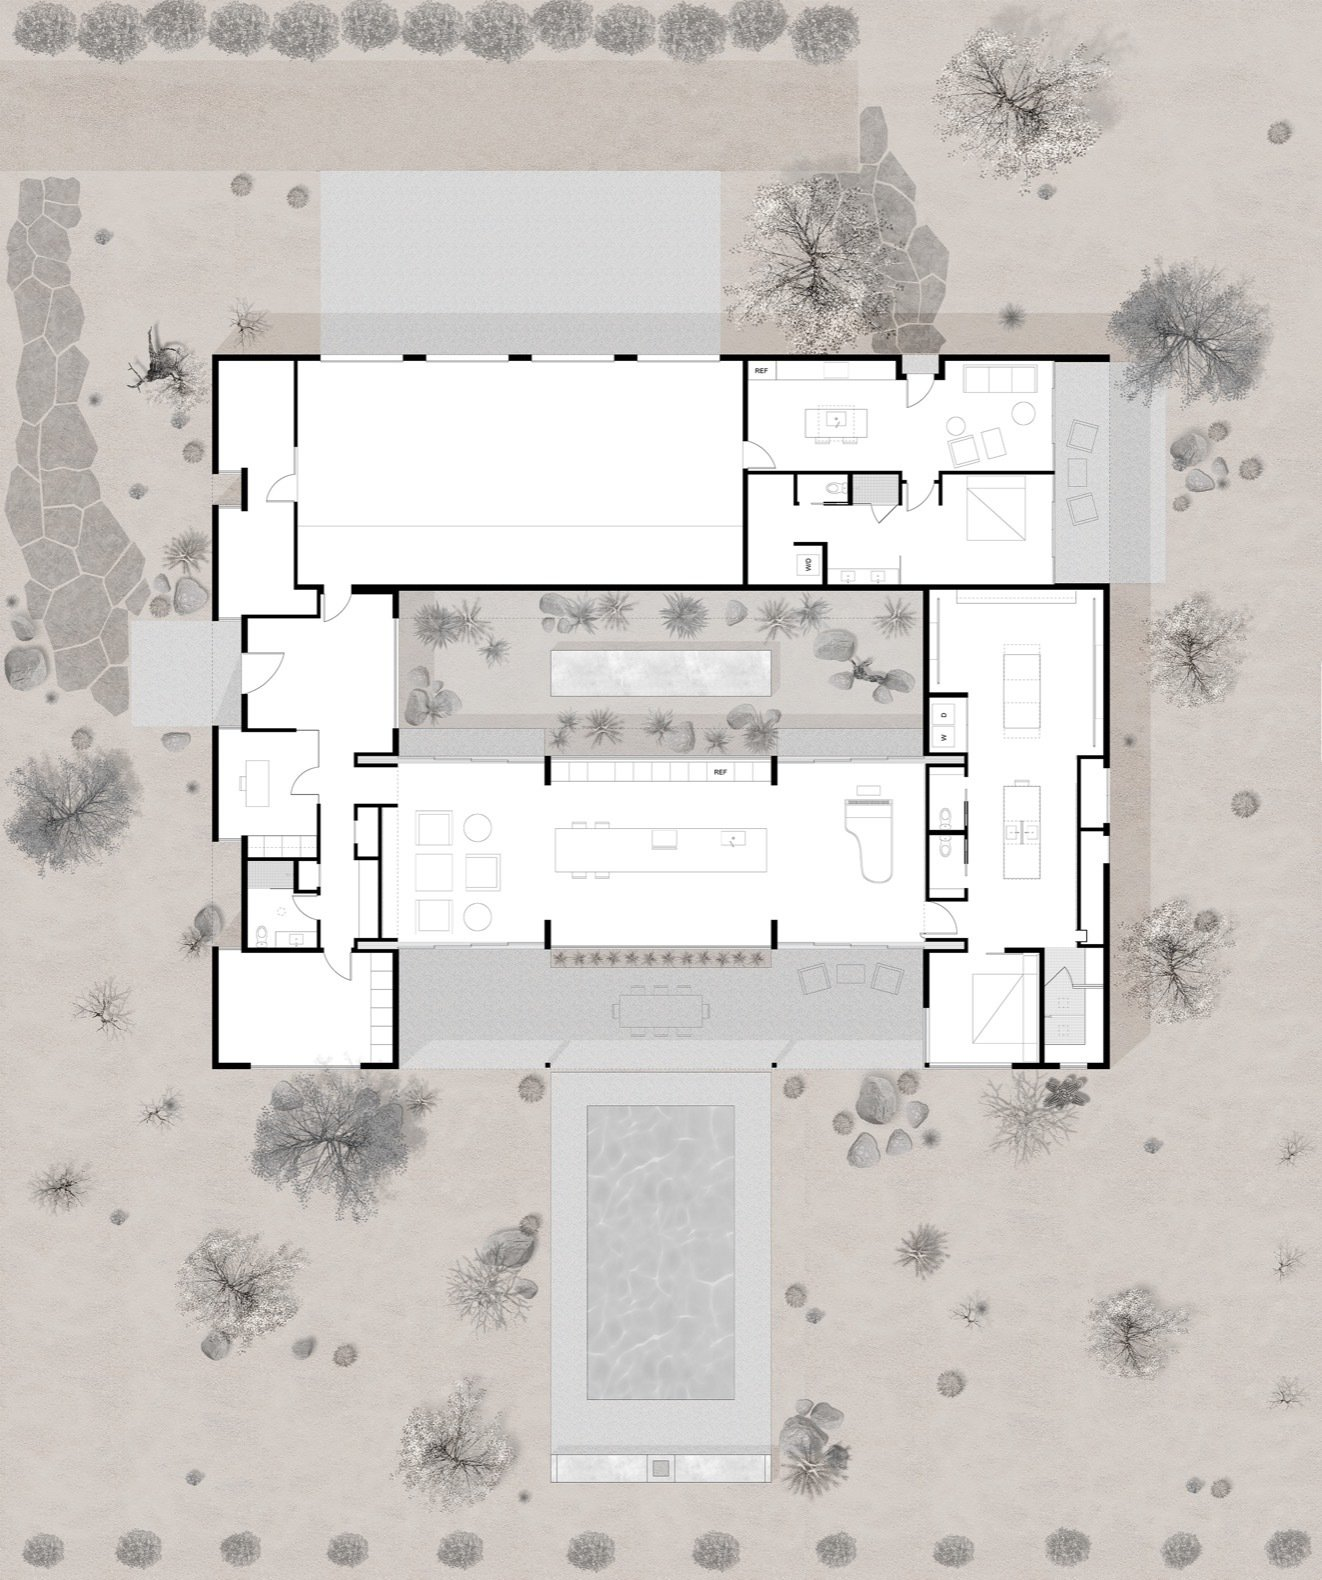 O-asis House floor plan  Photo 26 of 27 in This Minimalist, Solar-Powered Home Is a True Desert Oasis